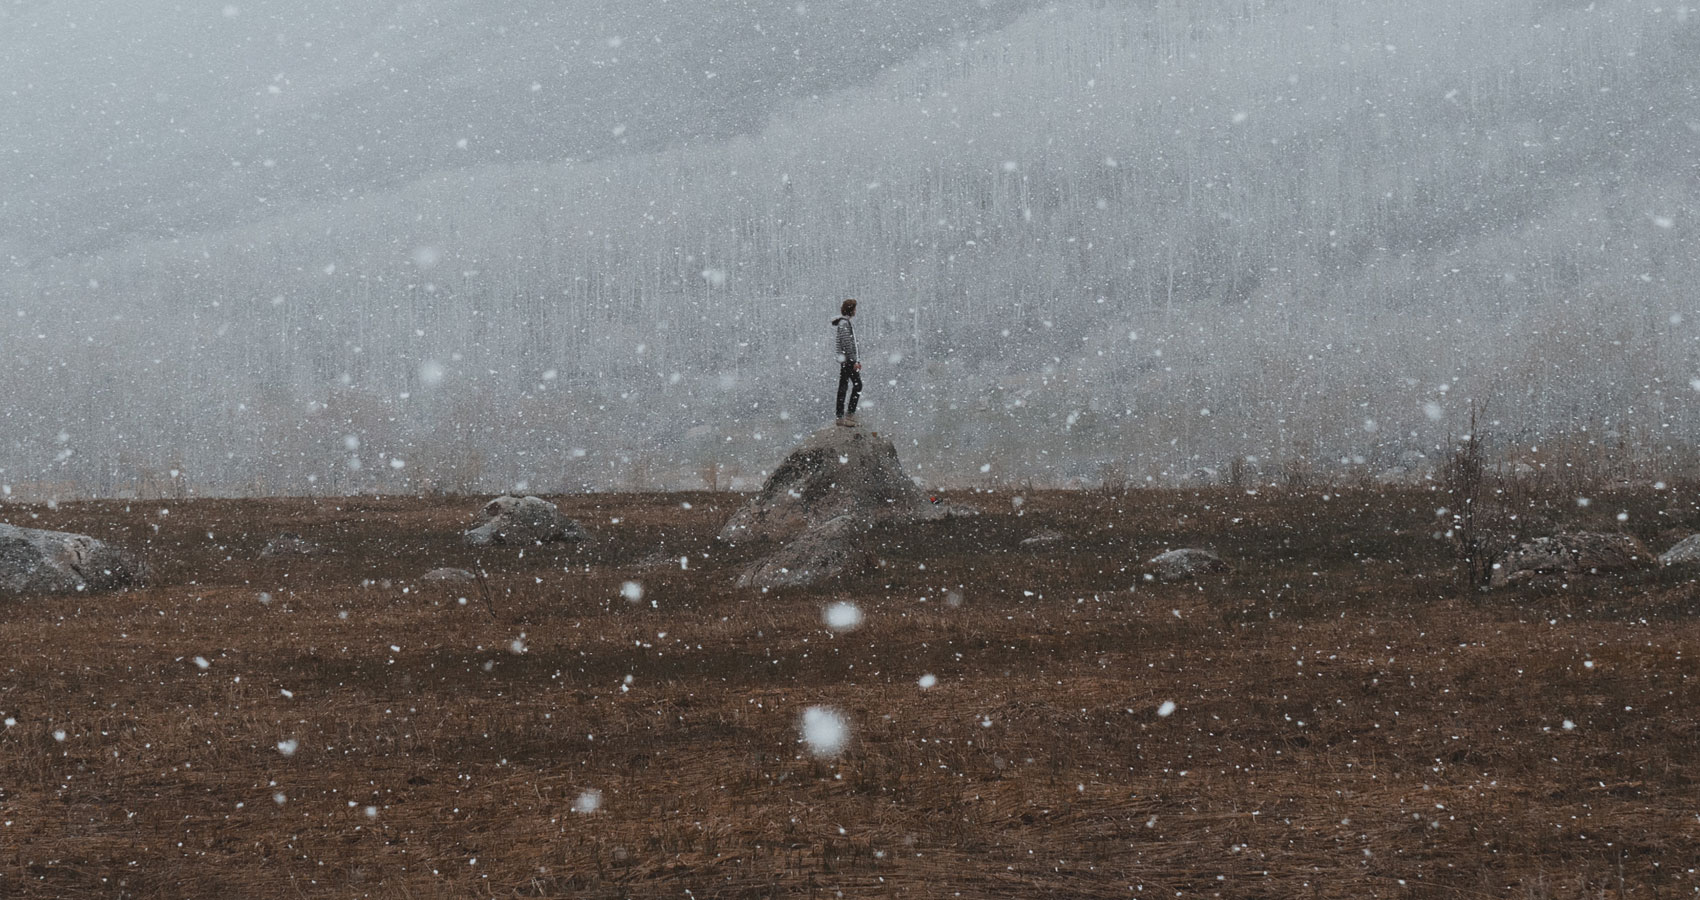 Cold Winter In My Heart, micropoetry by Simone Solìto at Spillwords.com